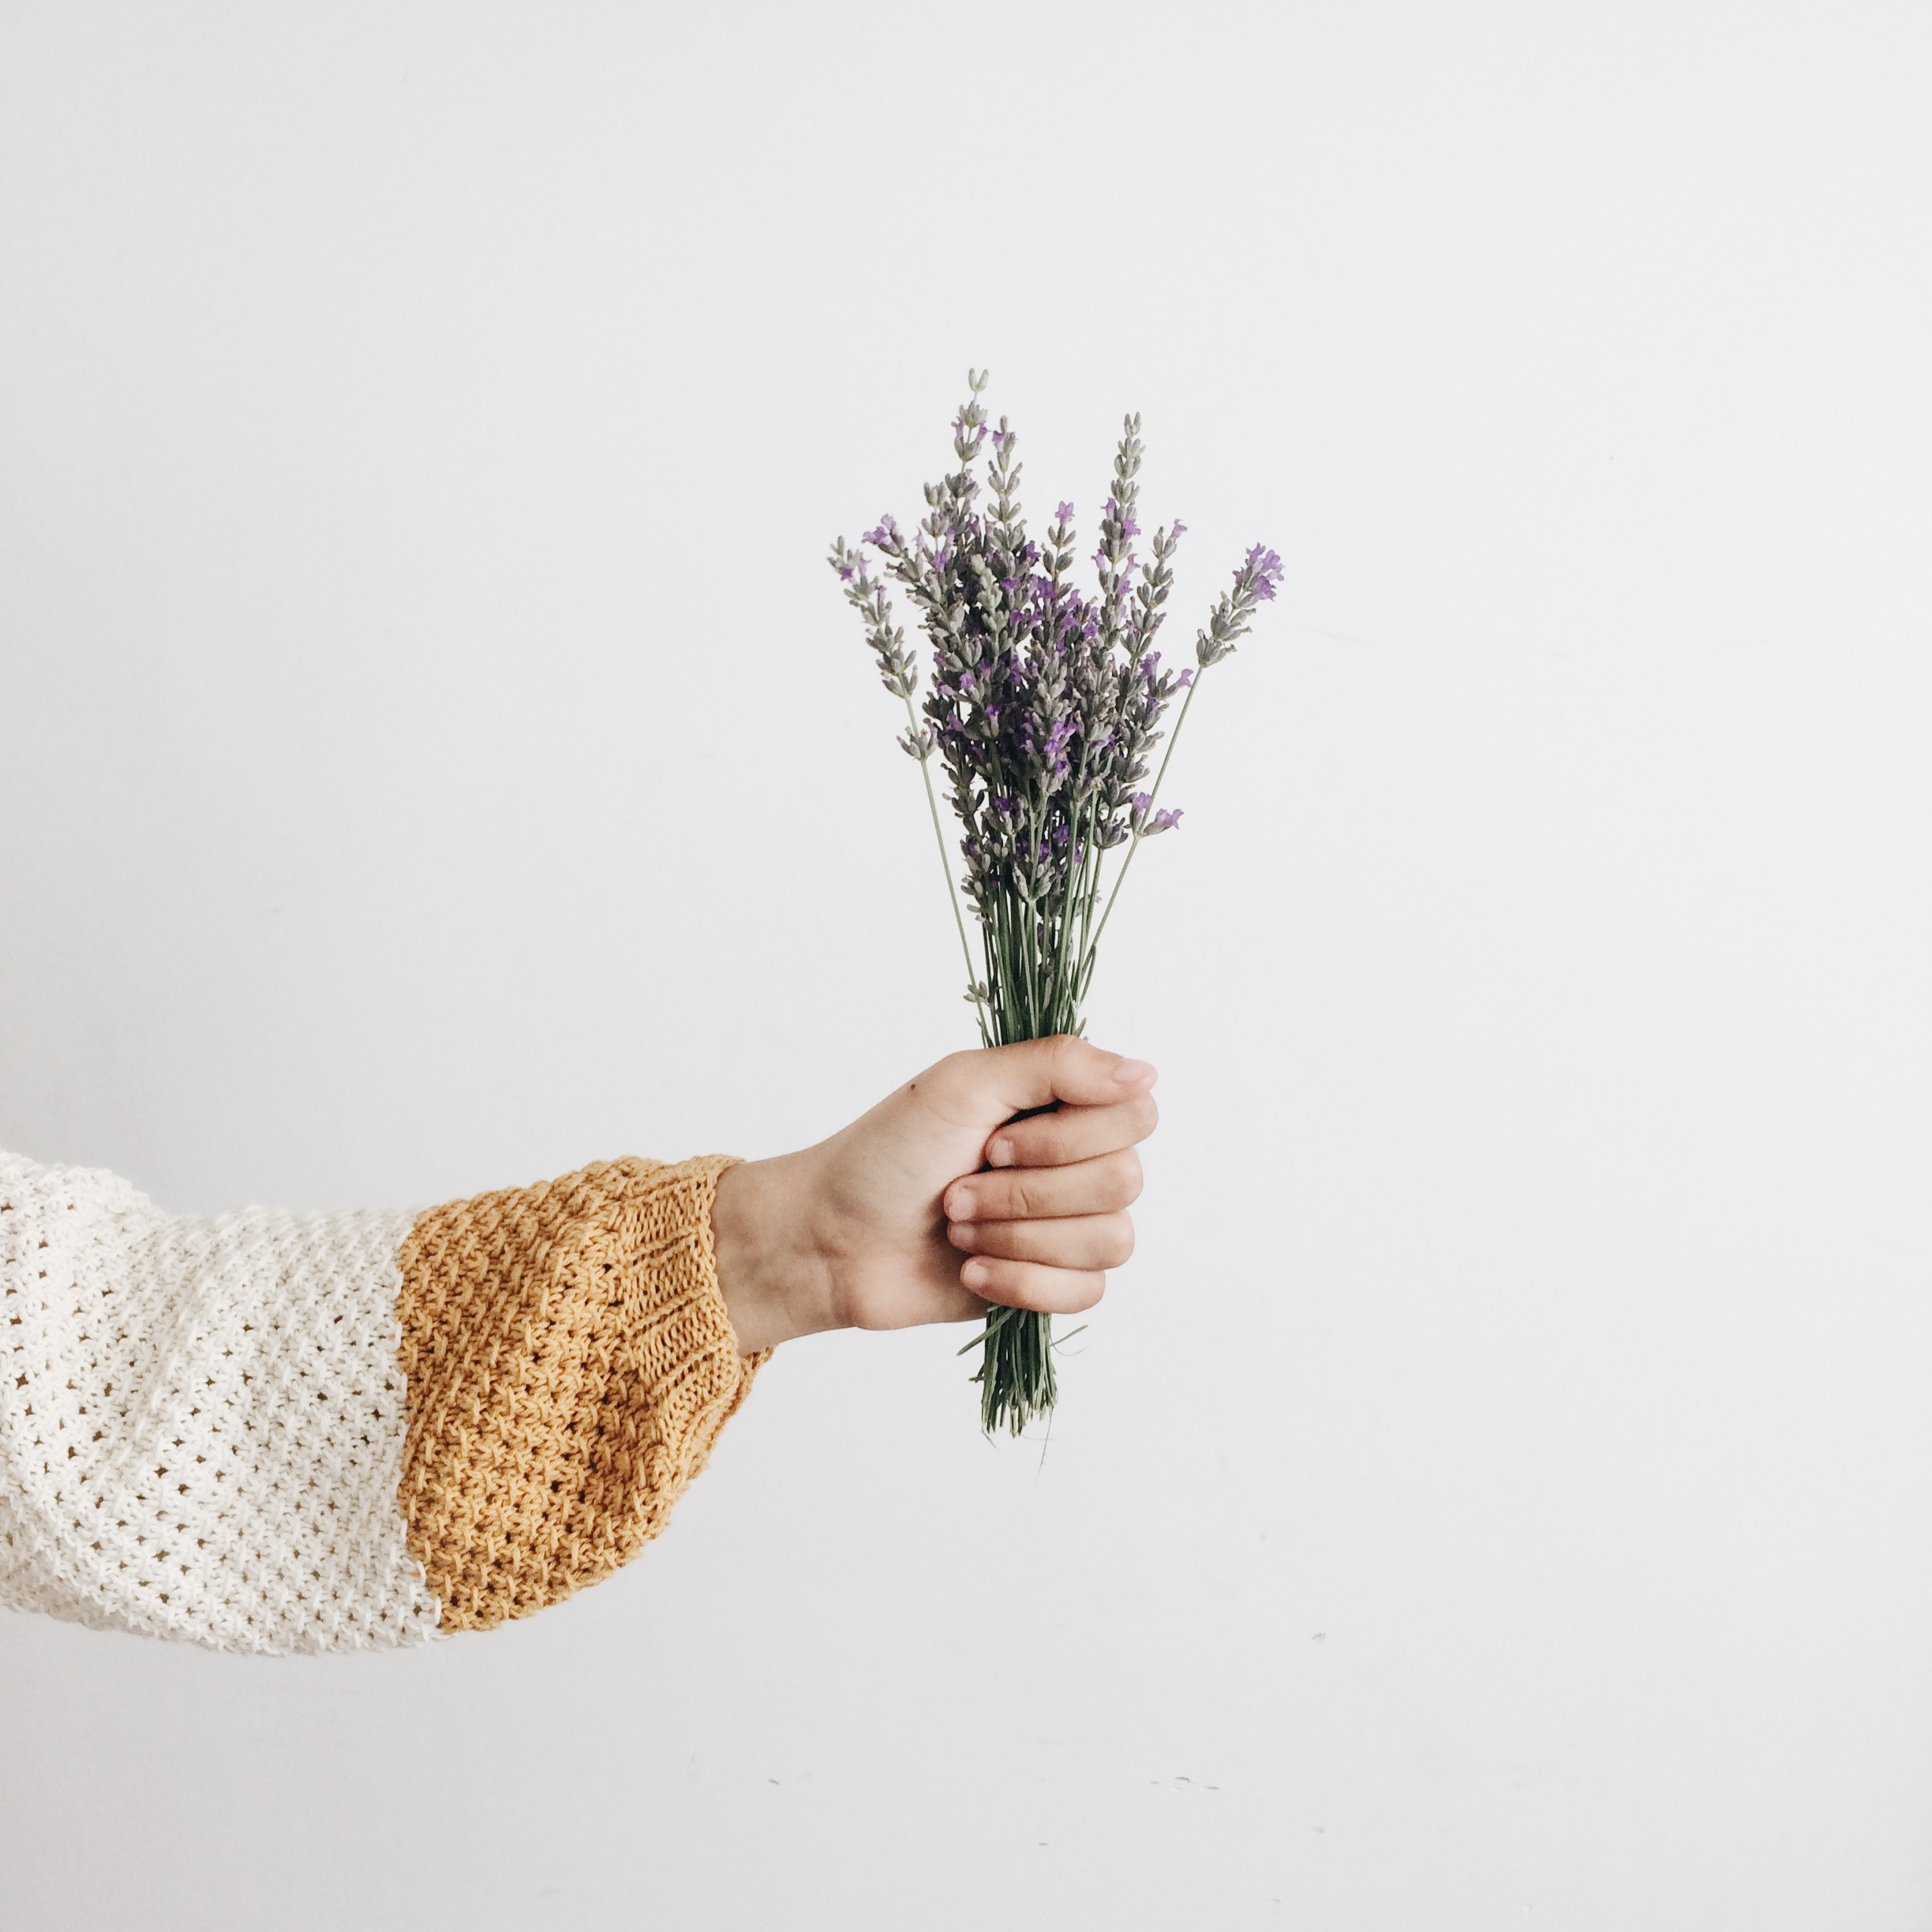 Outstretched hand holding a bouquet of lavender.